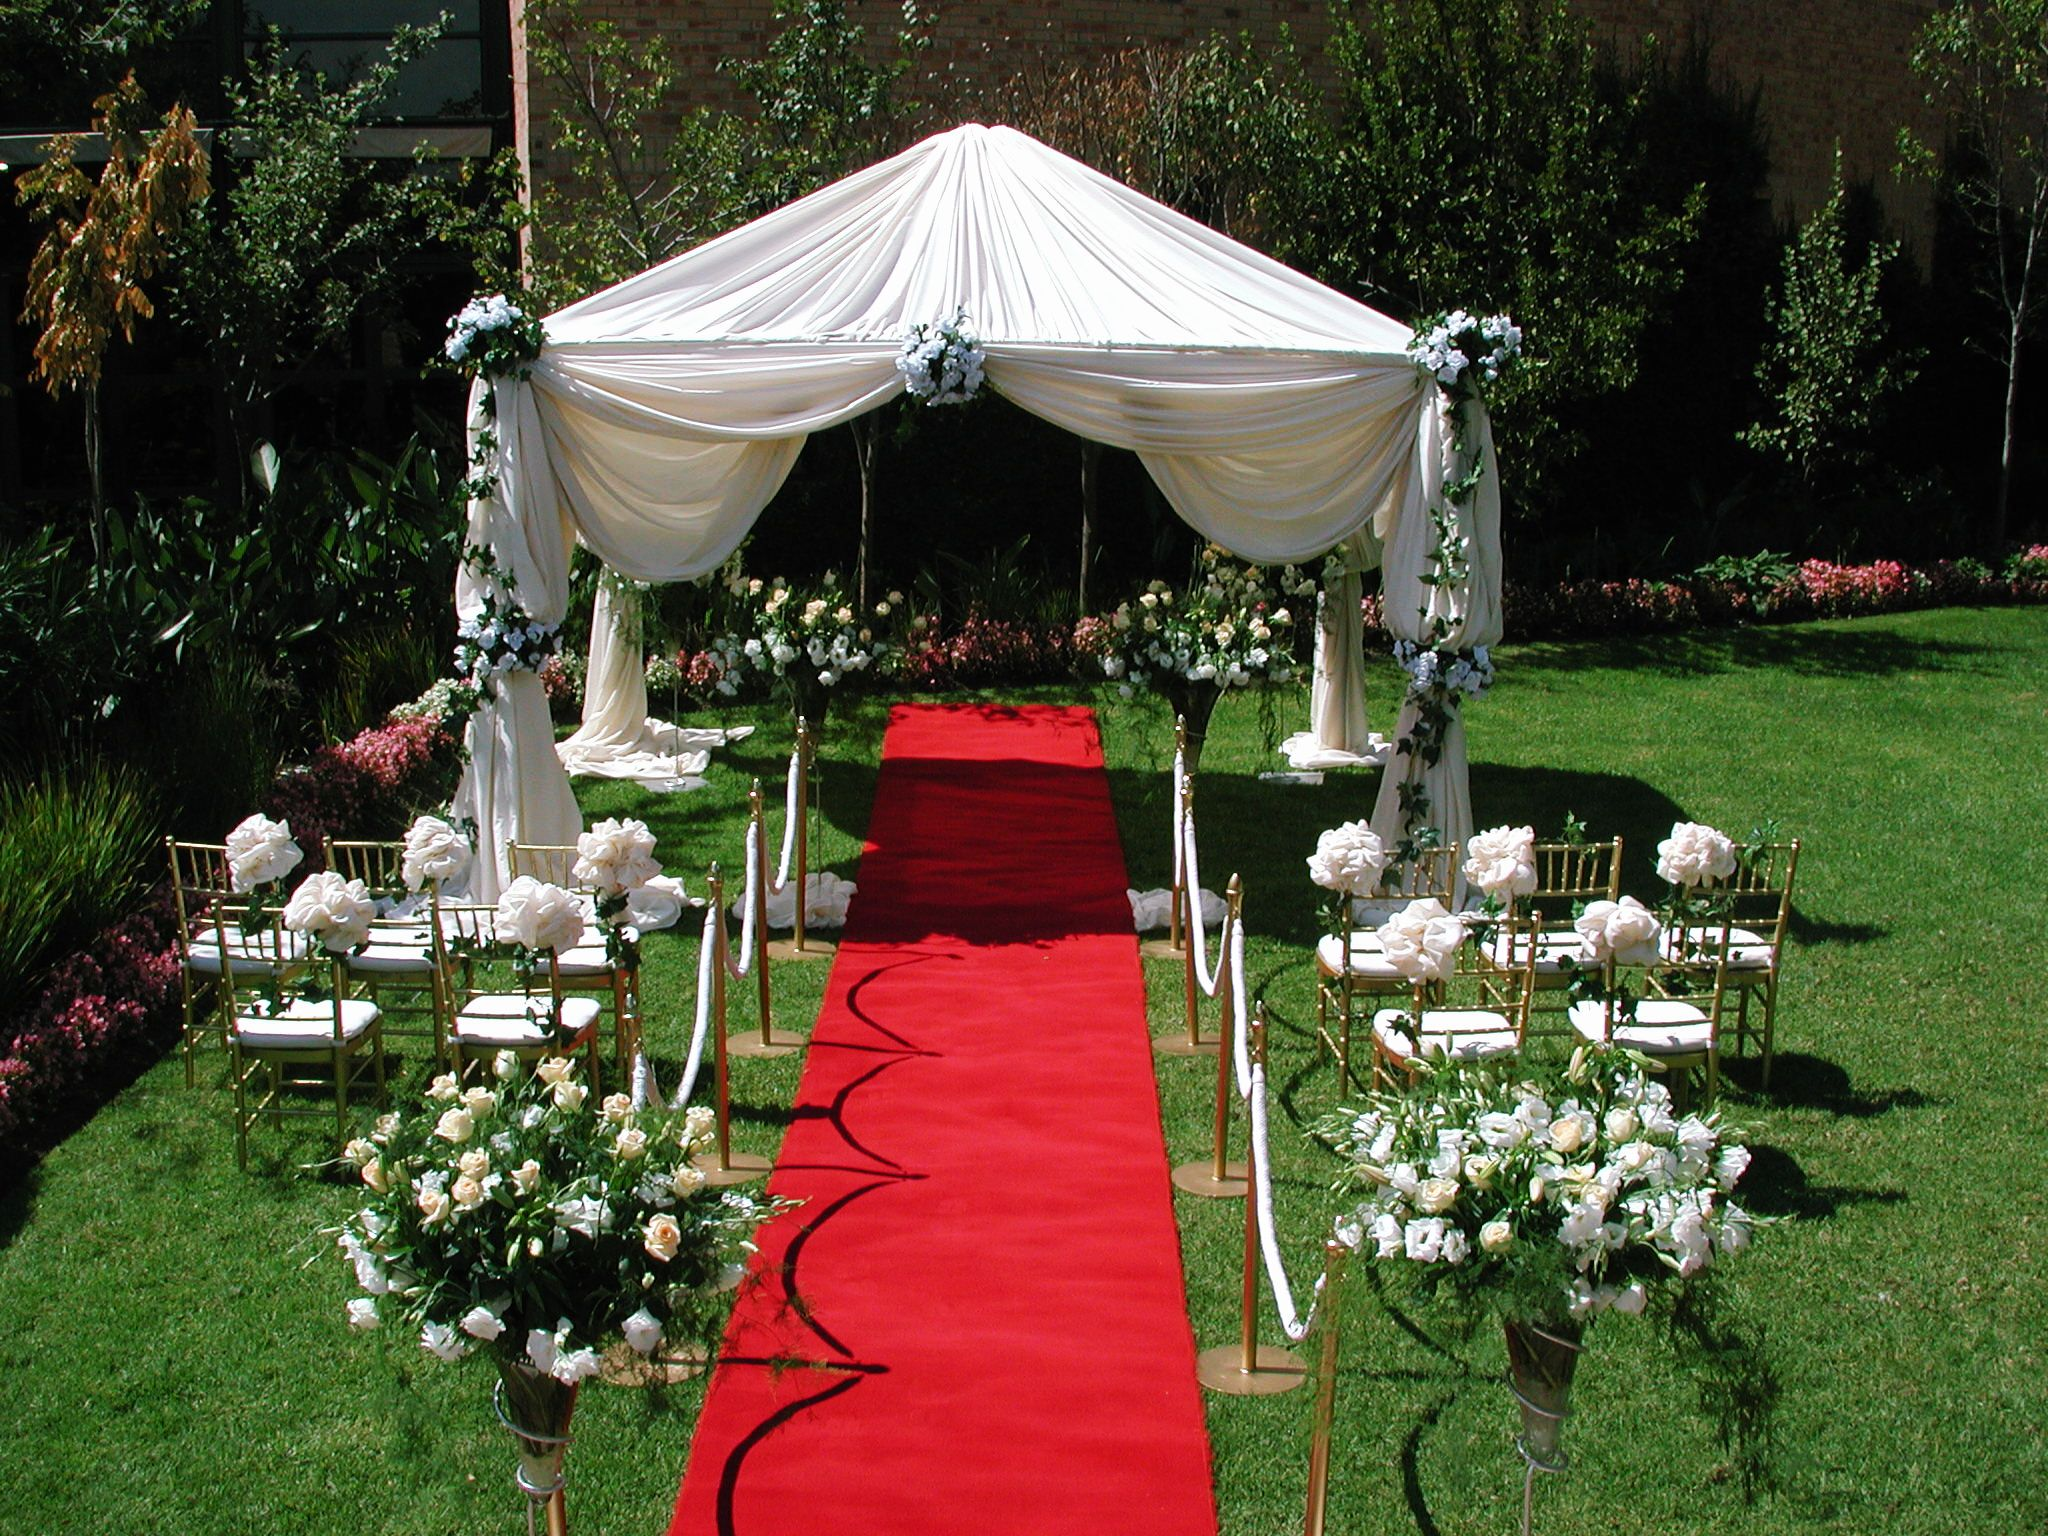 wedding venue decor wedding decor best images about Wedding Venue Decor on Pinterest Receptions Chair covers and Wedding ceremony decorations